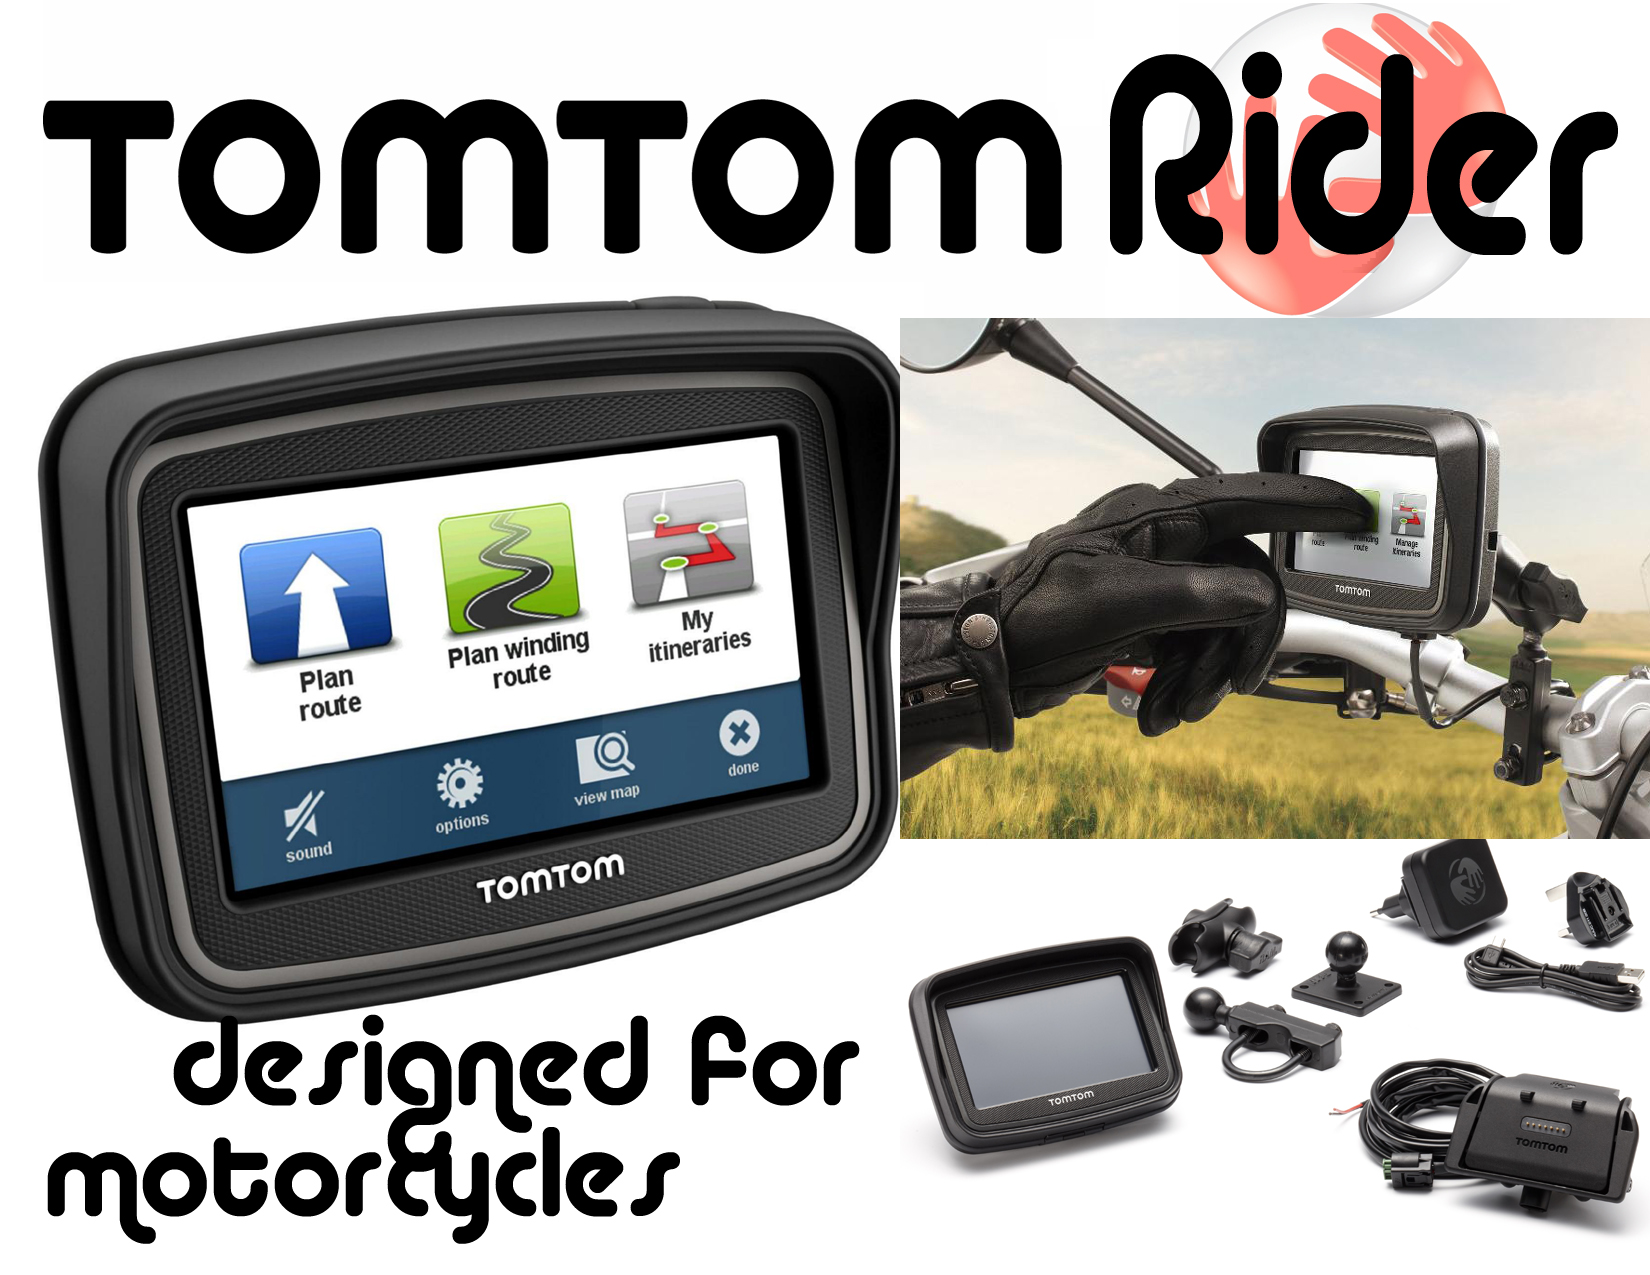 Tomtom Rider Motorcycle Gps Kit